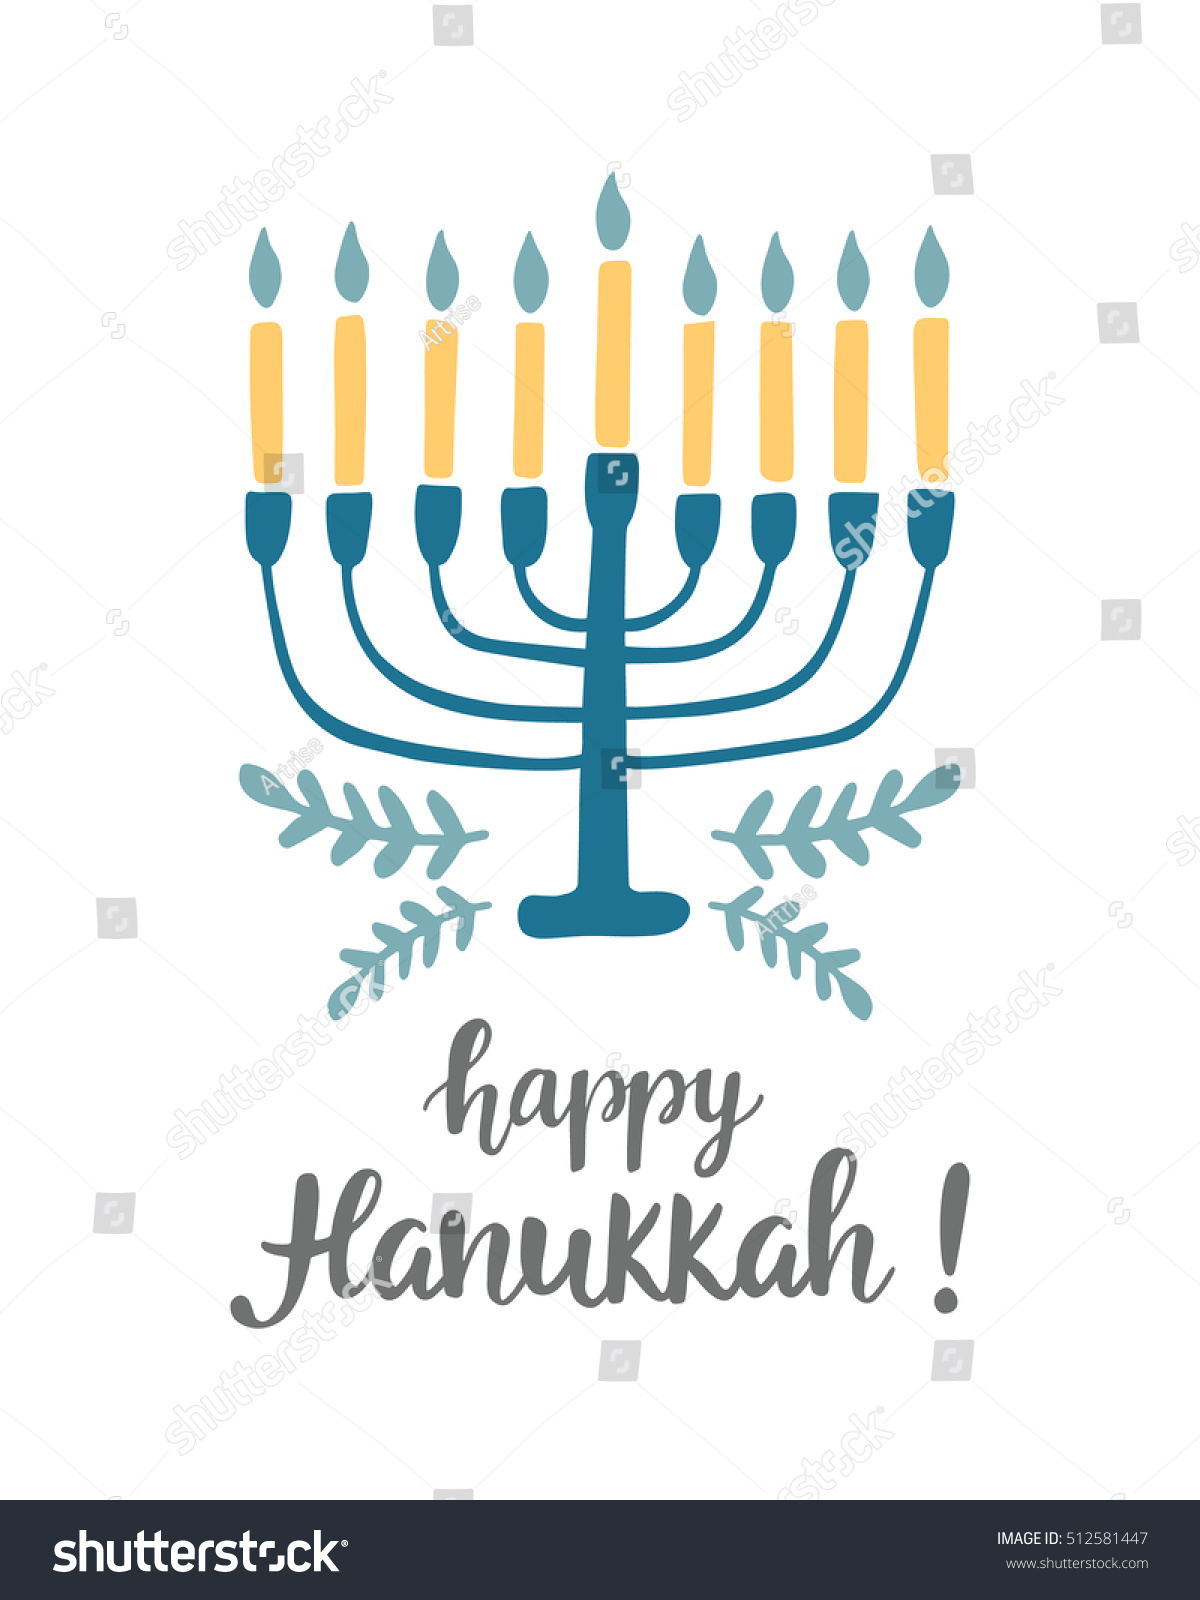 Happy Hanukkah Greeting Card Hand Written Stock Vector (Royalty Free ...